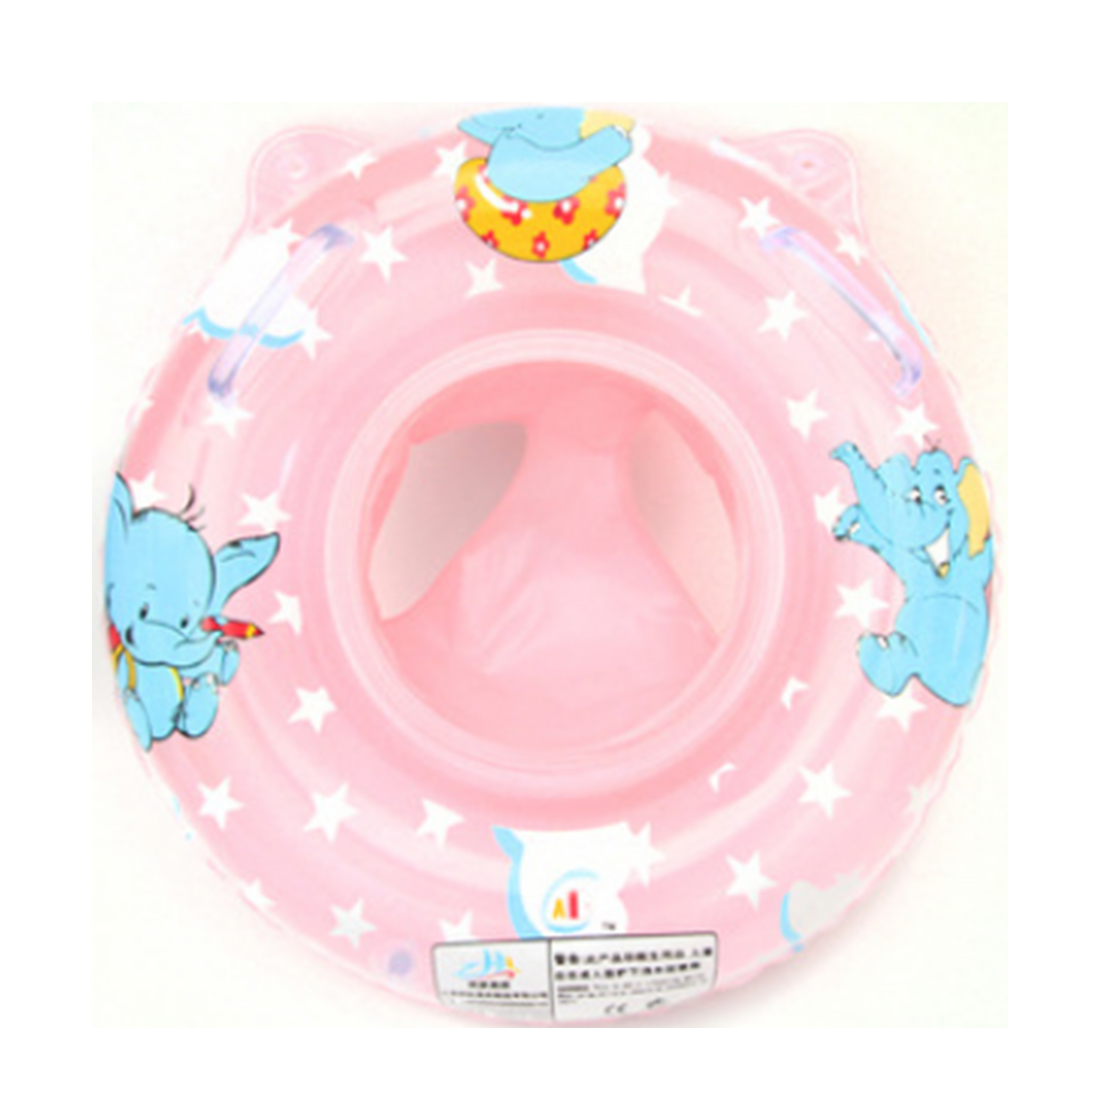 Inflatable Baby Pool Swimming Ring Thickening Armpits Ring Child Boat With Two Gripp Handle   Toys For Kids